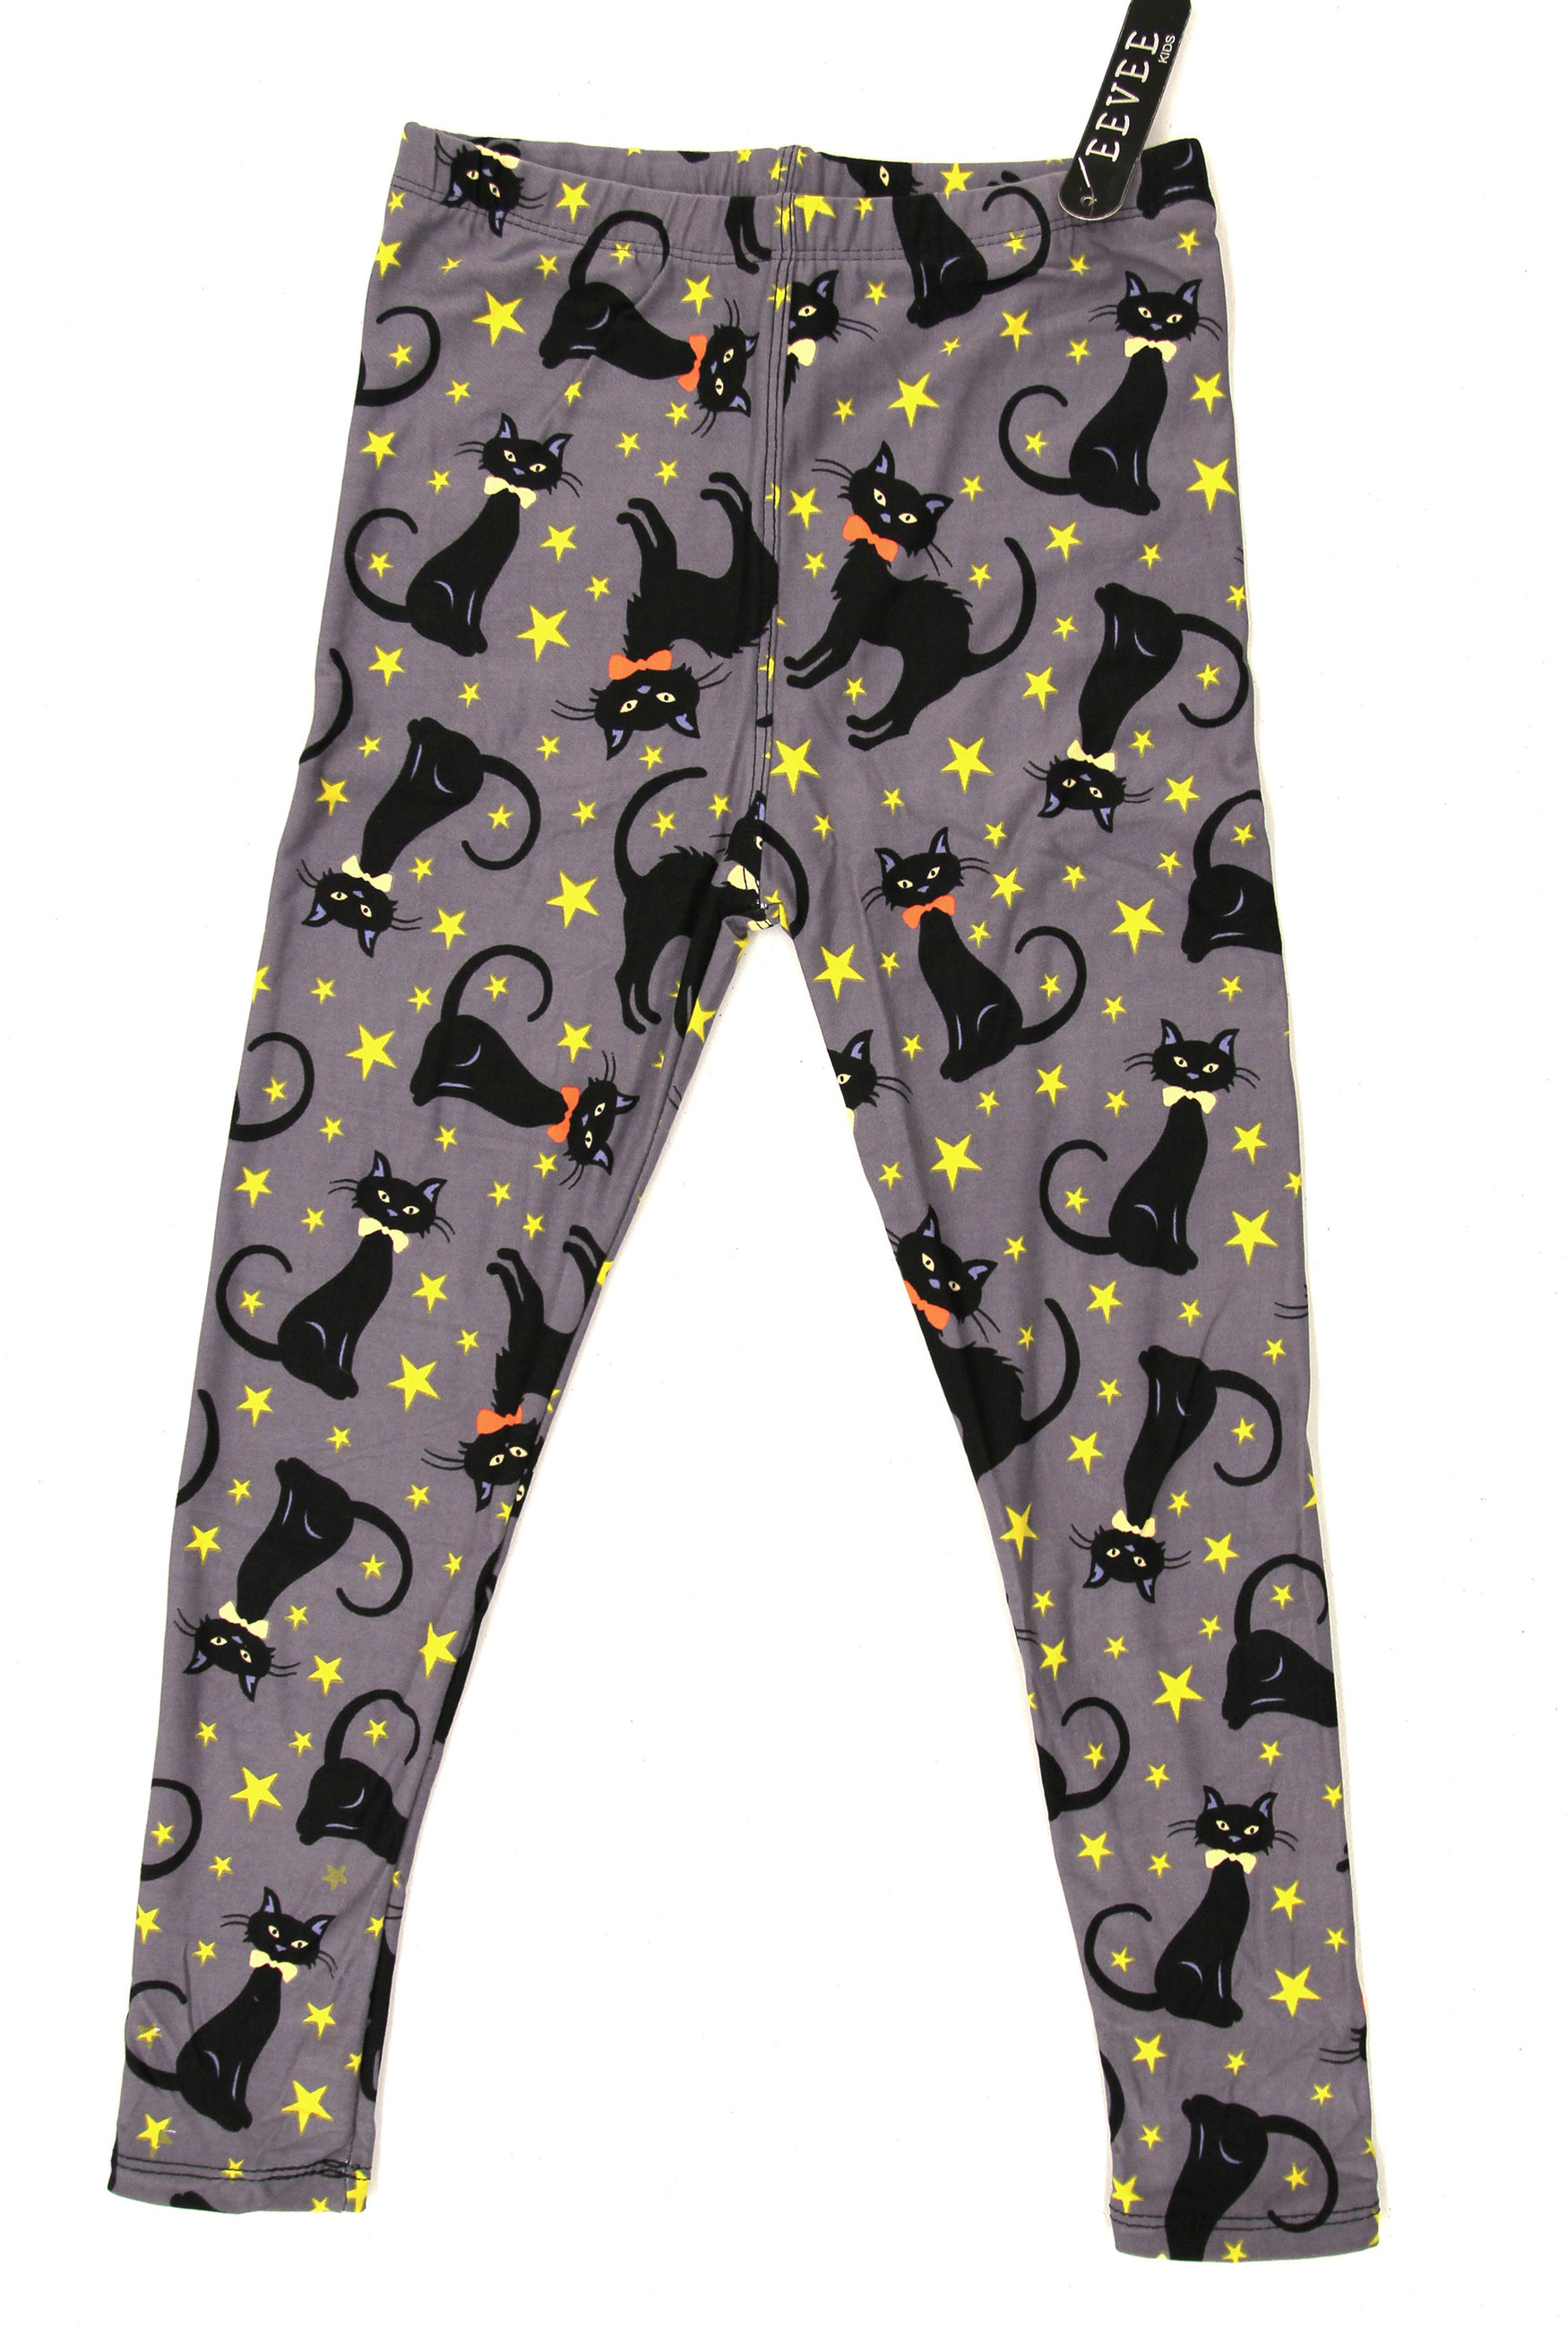 Buttery Soft Bow-tie Black Kitty Cats Kids Leggings